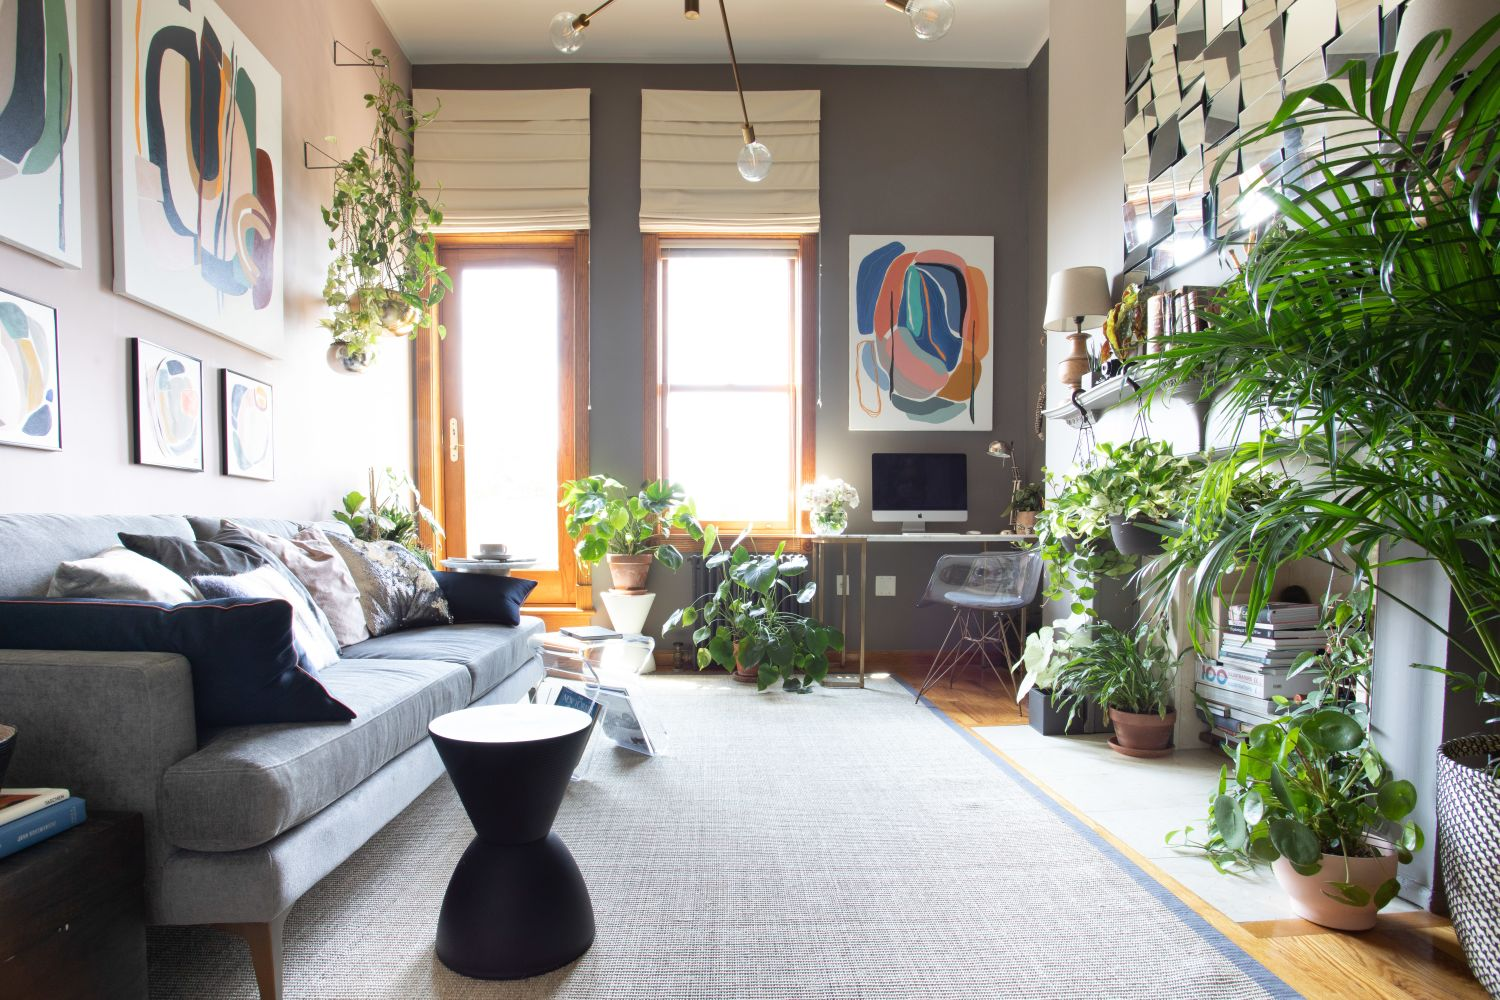 This May Be the Most Art and Plants in 400 Square Feet, Ever